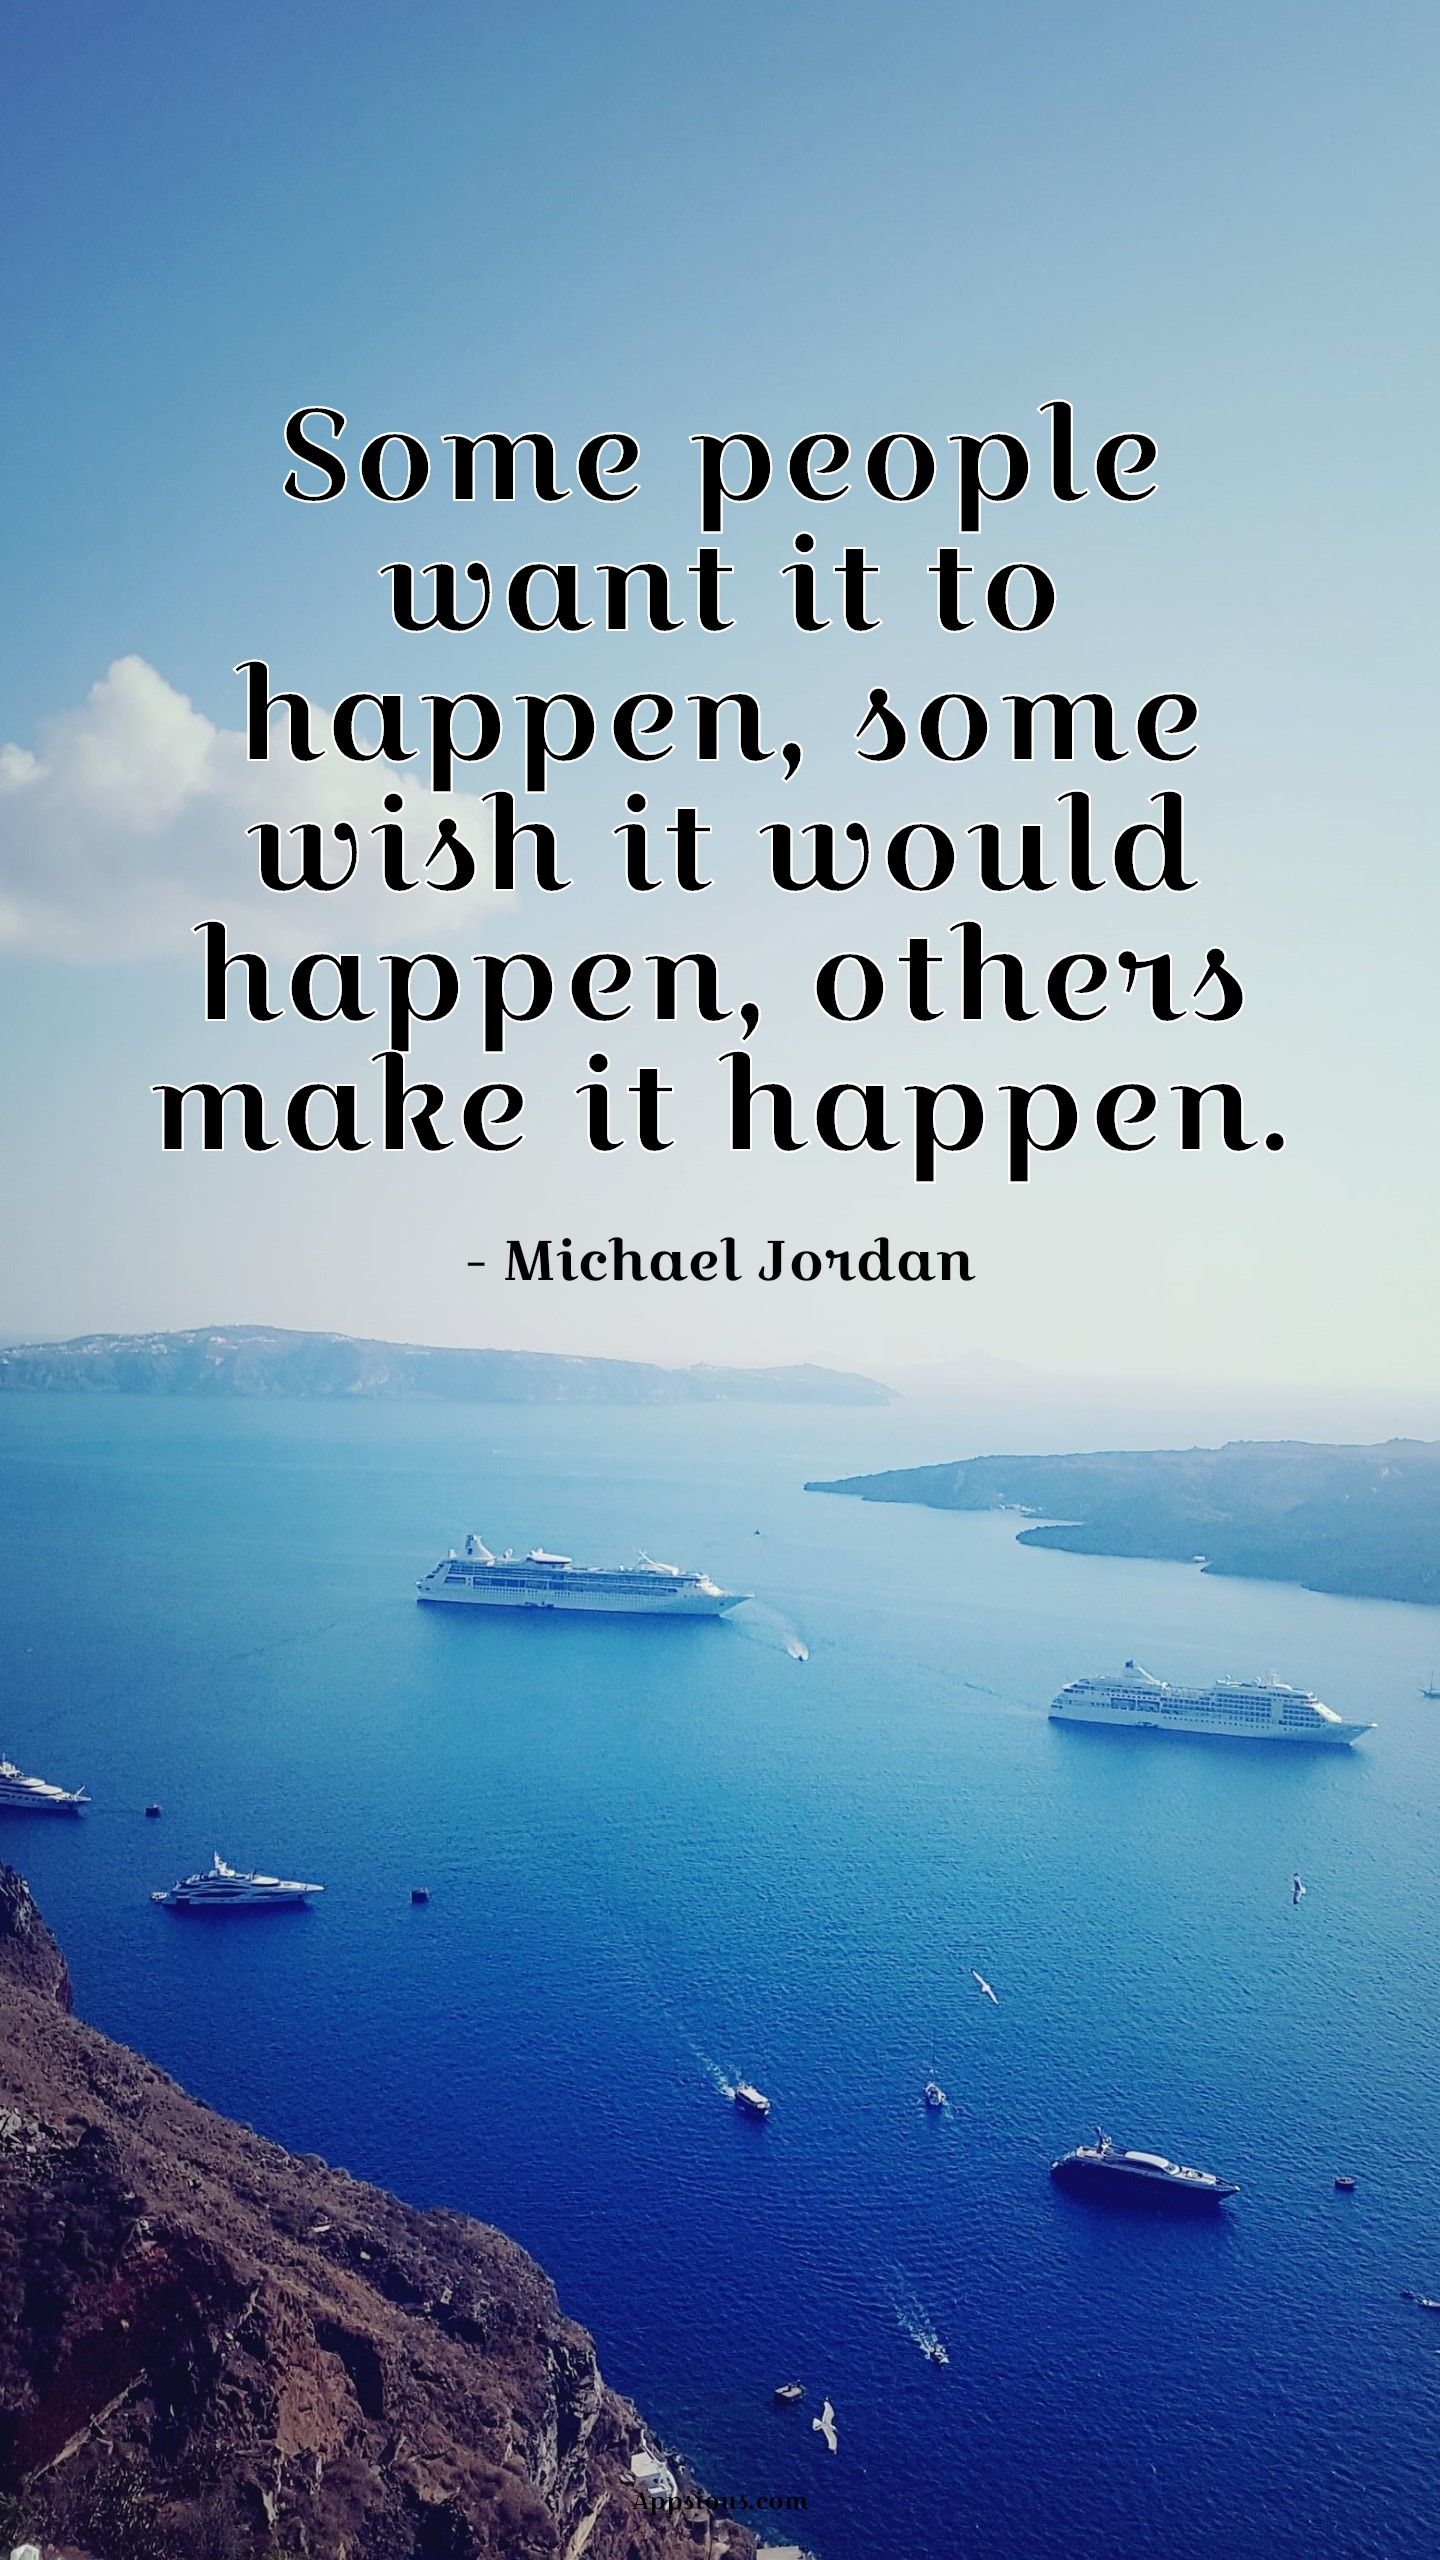 Some people want it to happen, some wish it would happen, others make it happen.